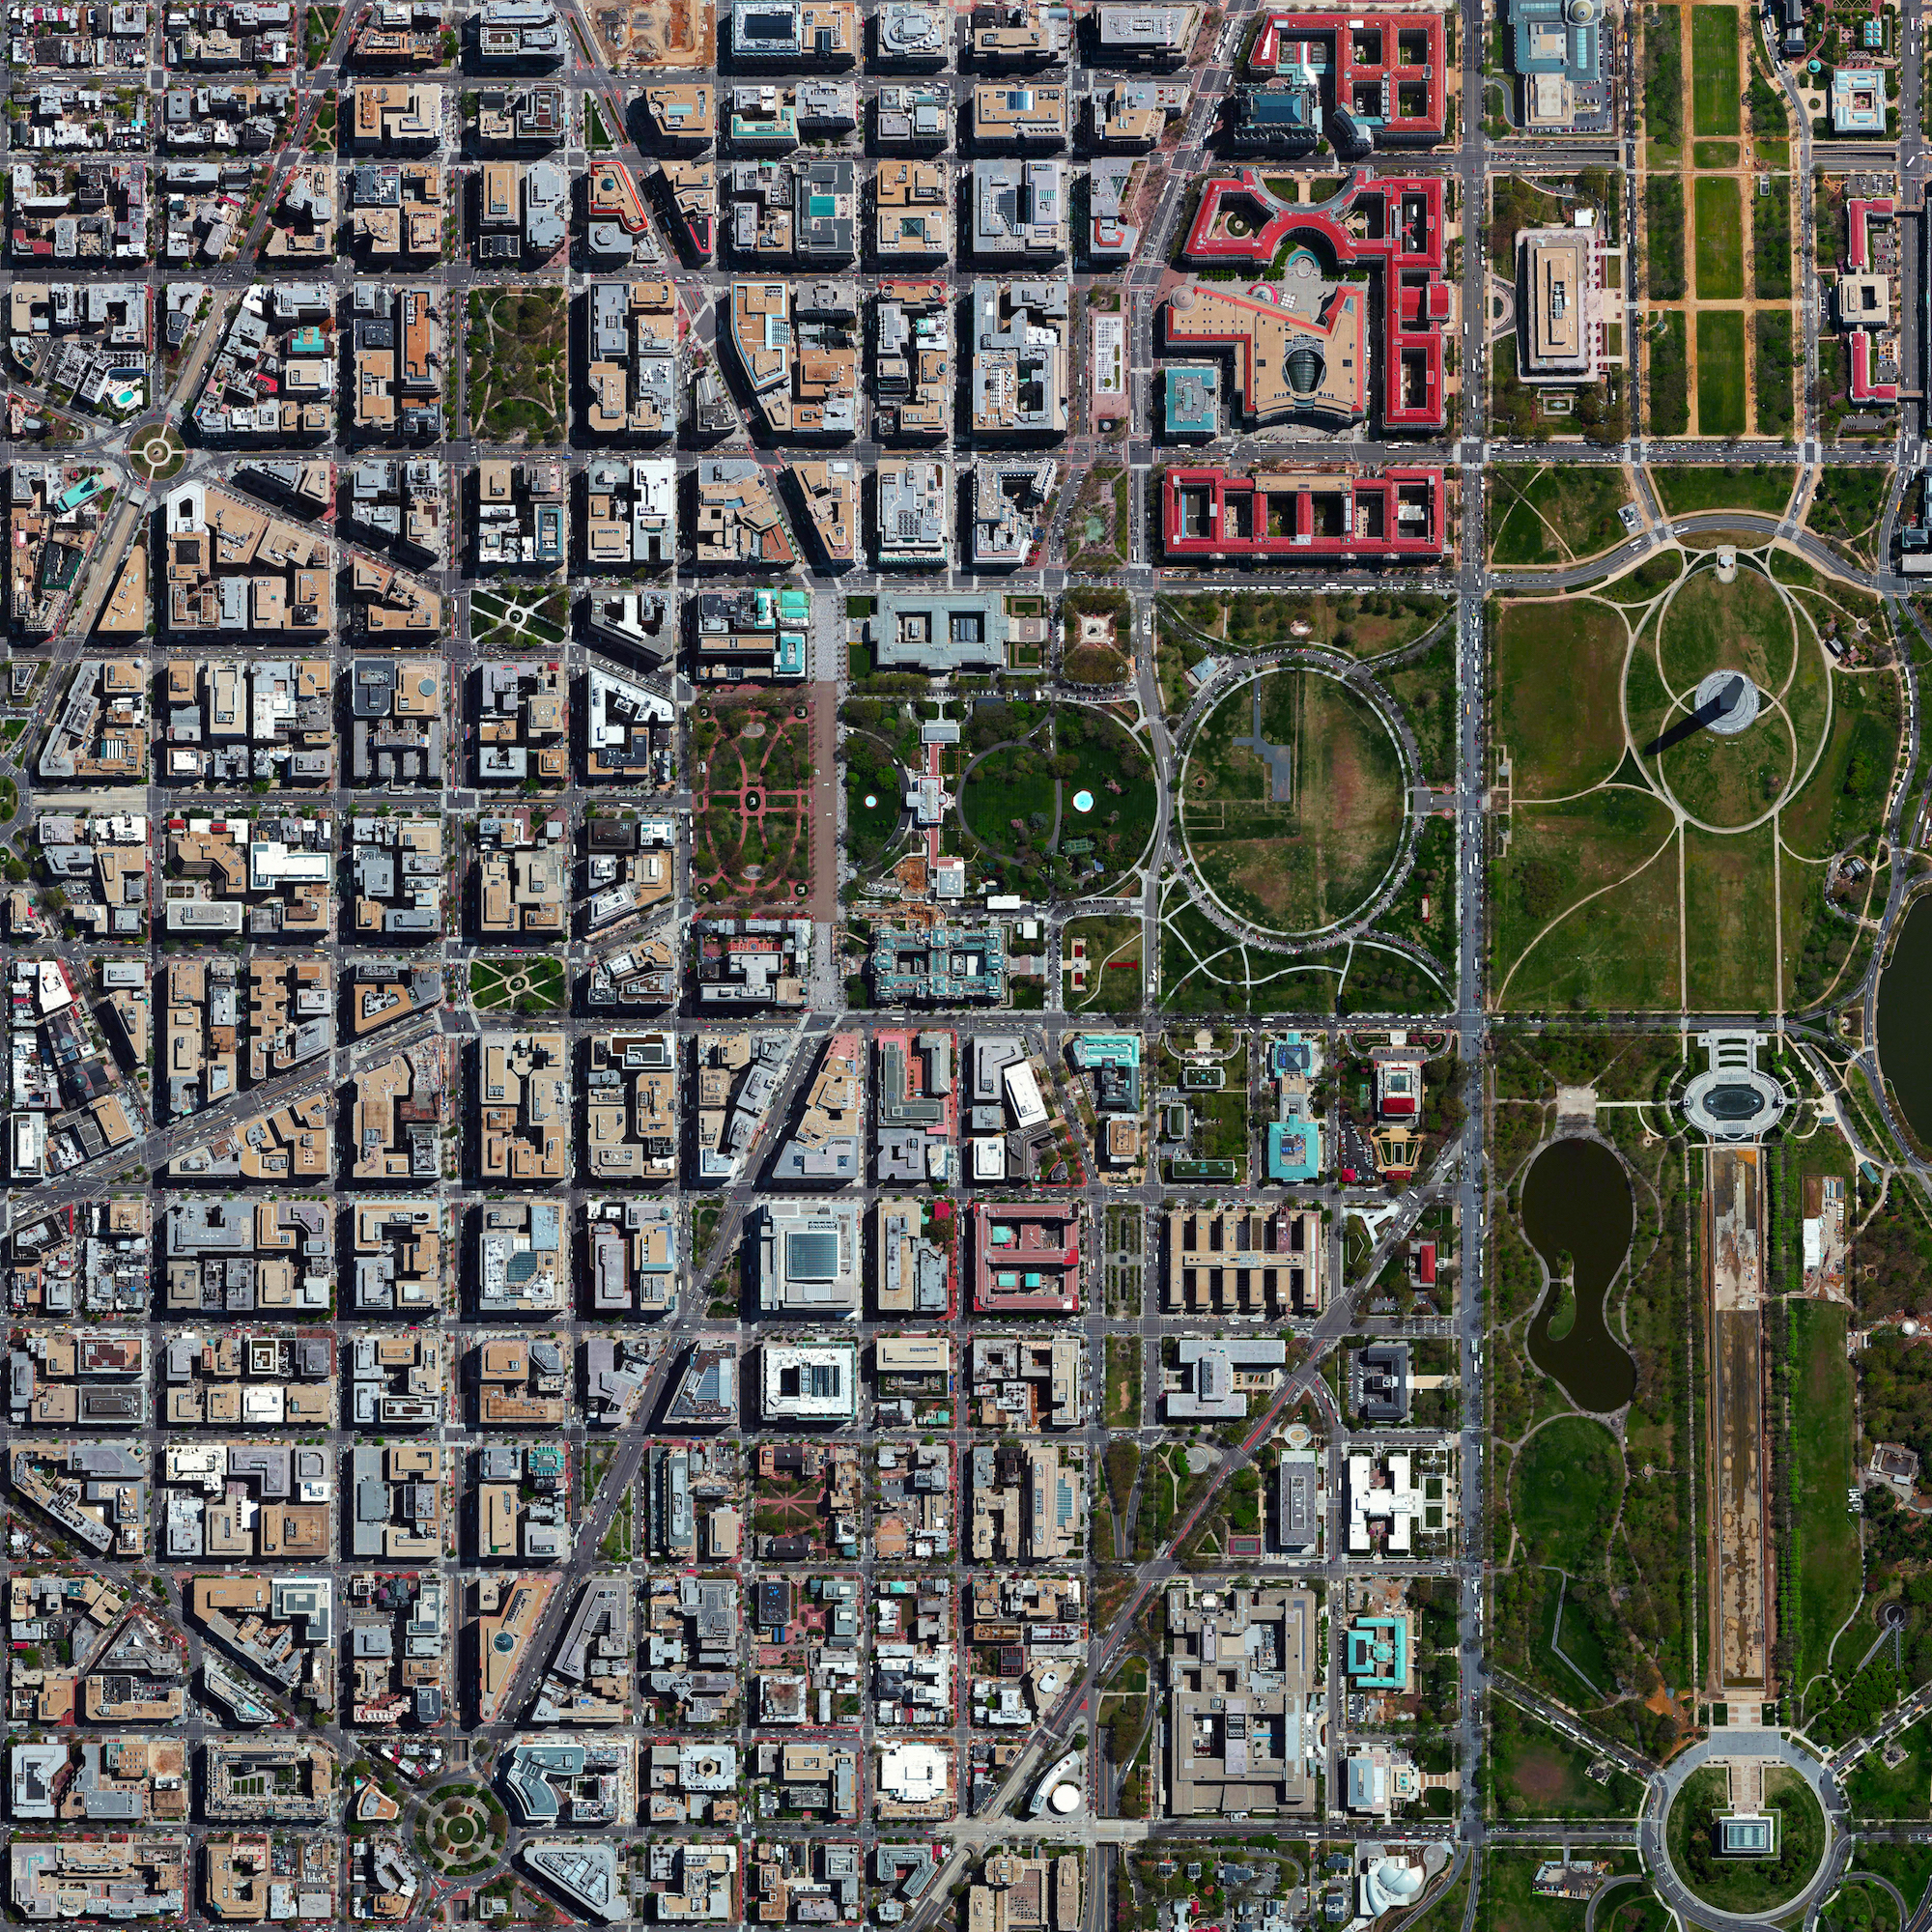 """8/23/2016    L'Enfant Plan    Washington, D.C, USA  38°53′26″N 77°1′13″W    We're continuing this week's focus on urban planning with this Overview of Washington, D.C., USA. The city's L'Enfant Plan was developed in 1791 by Major Pierre Charles L'Enfant for George Washington, the first President of the United States. L'Enfant designed a compass-aligned grid for the city's streets, with intersecting diagonal avenues that were later named after the states of the union. The diagonal avenues also intersect with the north-south and east-west streets at circles and rectangular plazas in order to create more open, green spaces. Lastly, L'Enfant laid out a 400 foot-wide (122 meter) garden-lined """"grand avenue"""" - what is now know as the National Mall – that connects the US Capitol Building, the Washington Monument, and the Lincoln Memorial (the latter two are visible at right in this Overview)."""